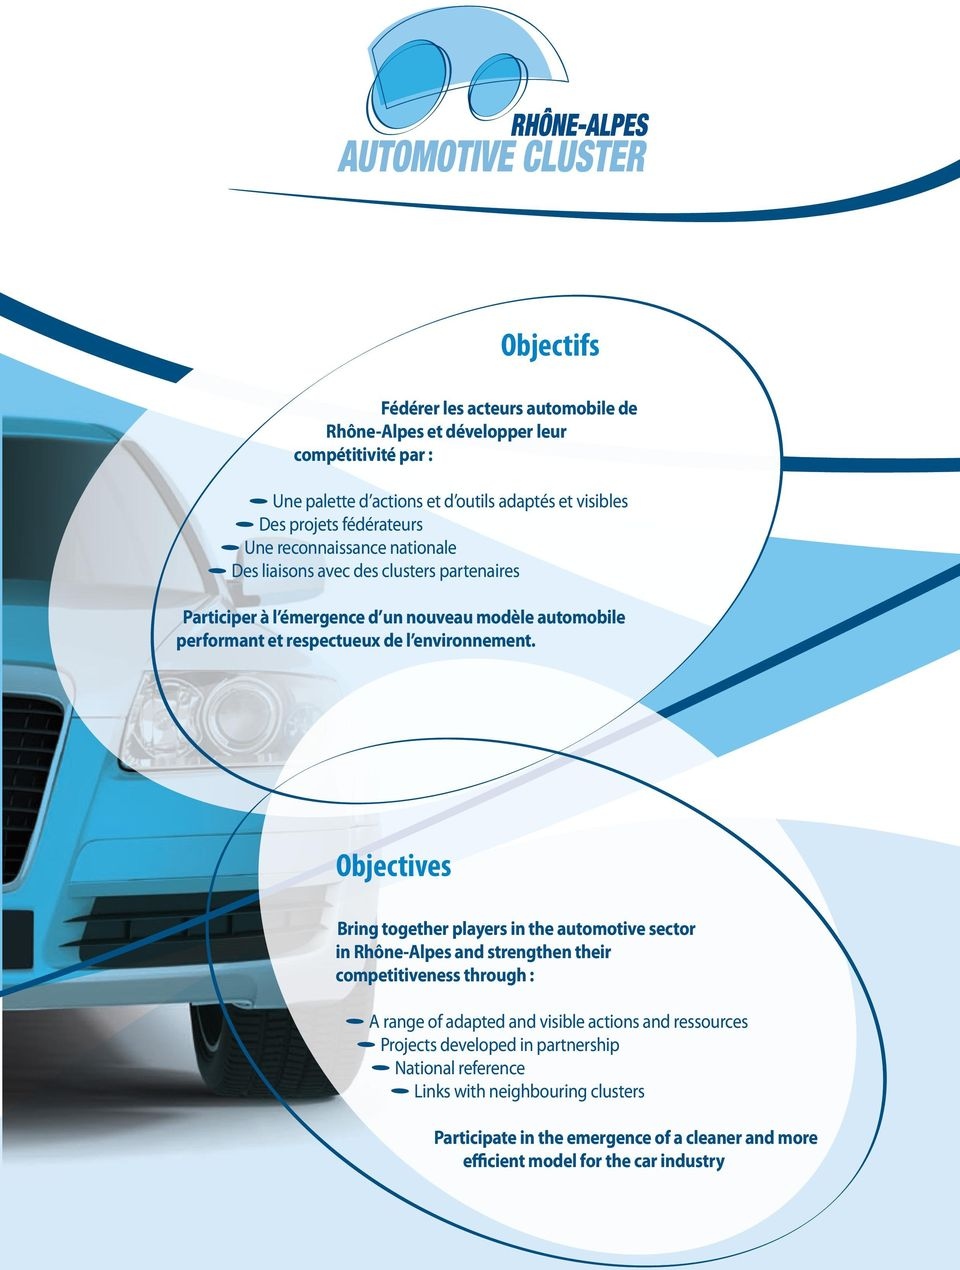 Objectives Bring together players in the automotive sector in Rhône-Alpes and strengthen their competitiveness through : A range of adapted and visible actions and